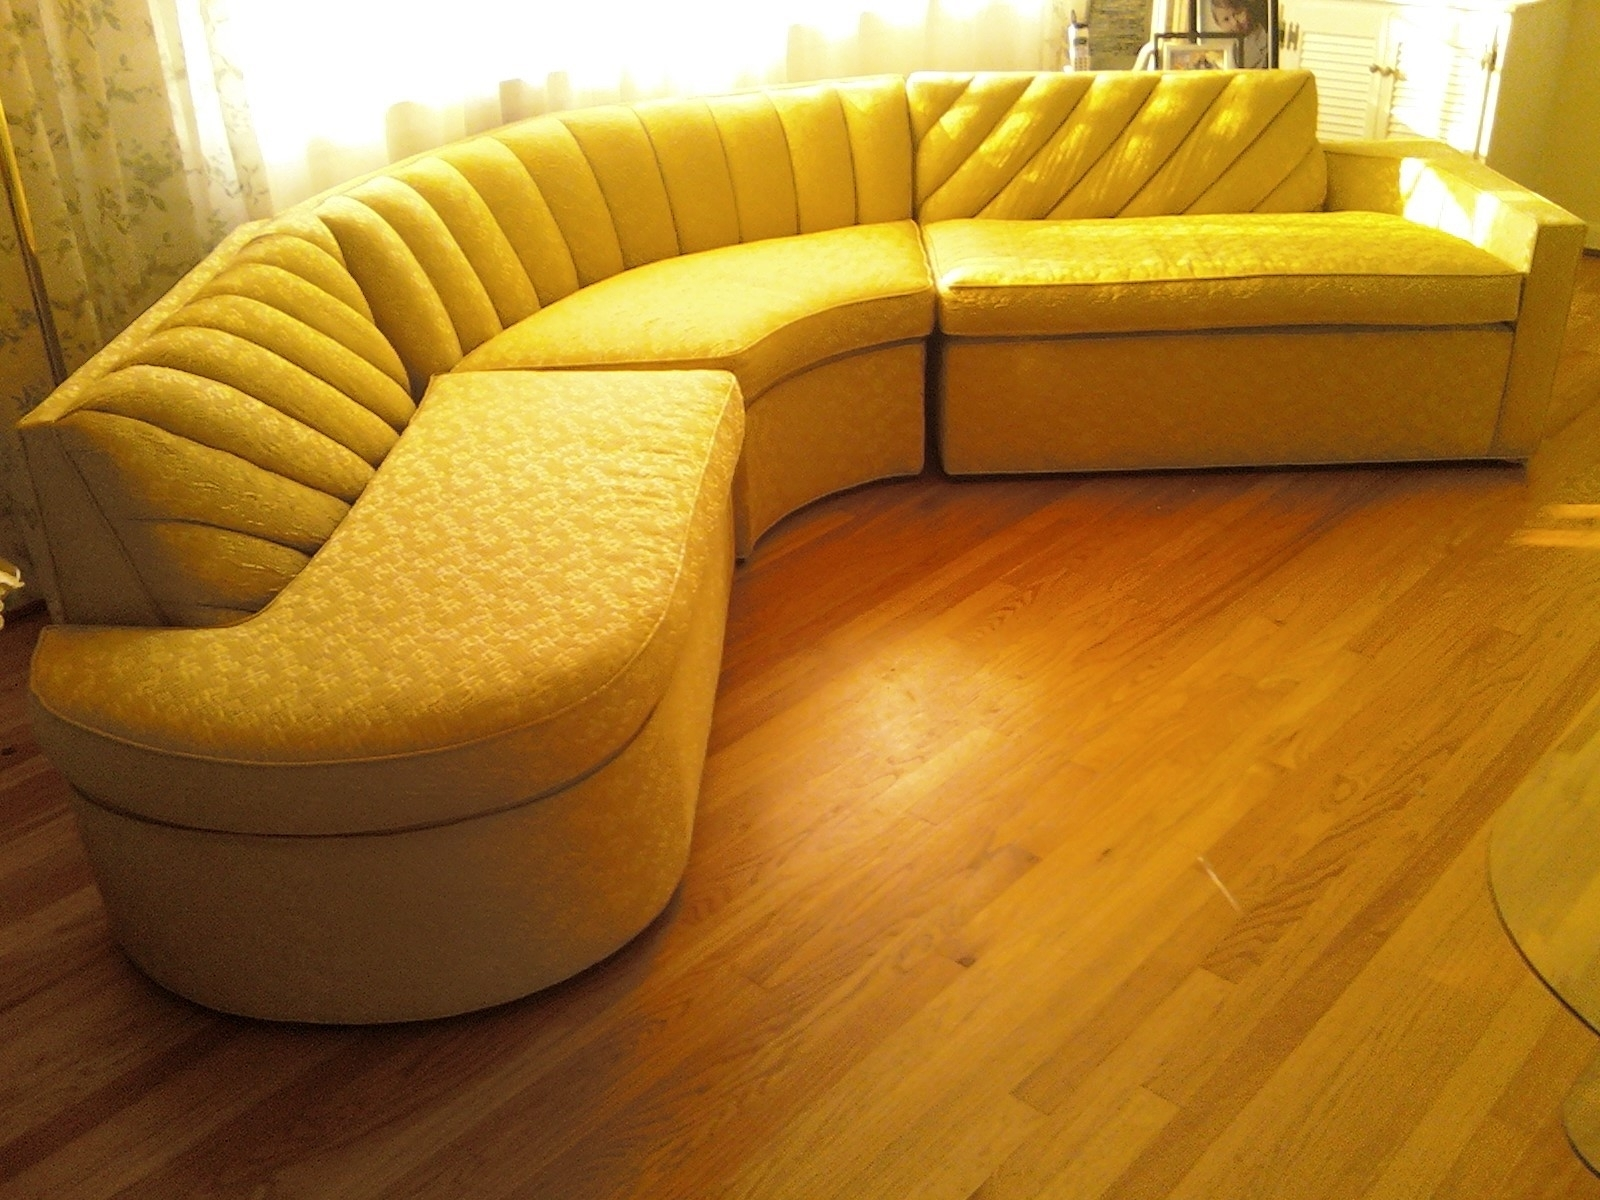 Vintage Sectional Sofas Inside 2018 Vintage Sectional Sofa – Modern Danish Furniture — All About Home (View 9 of 15)